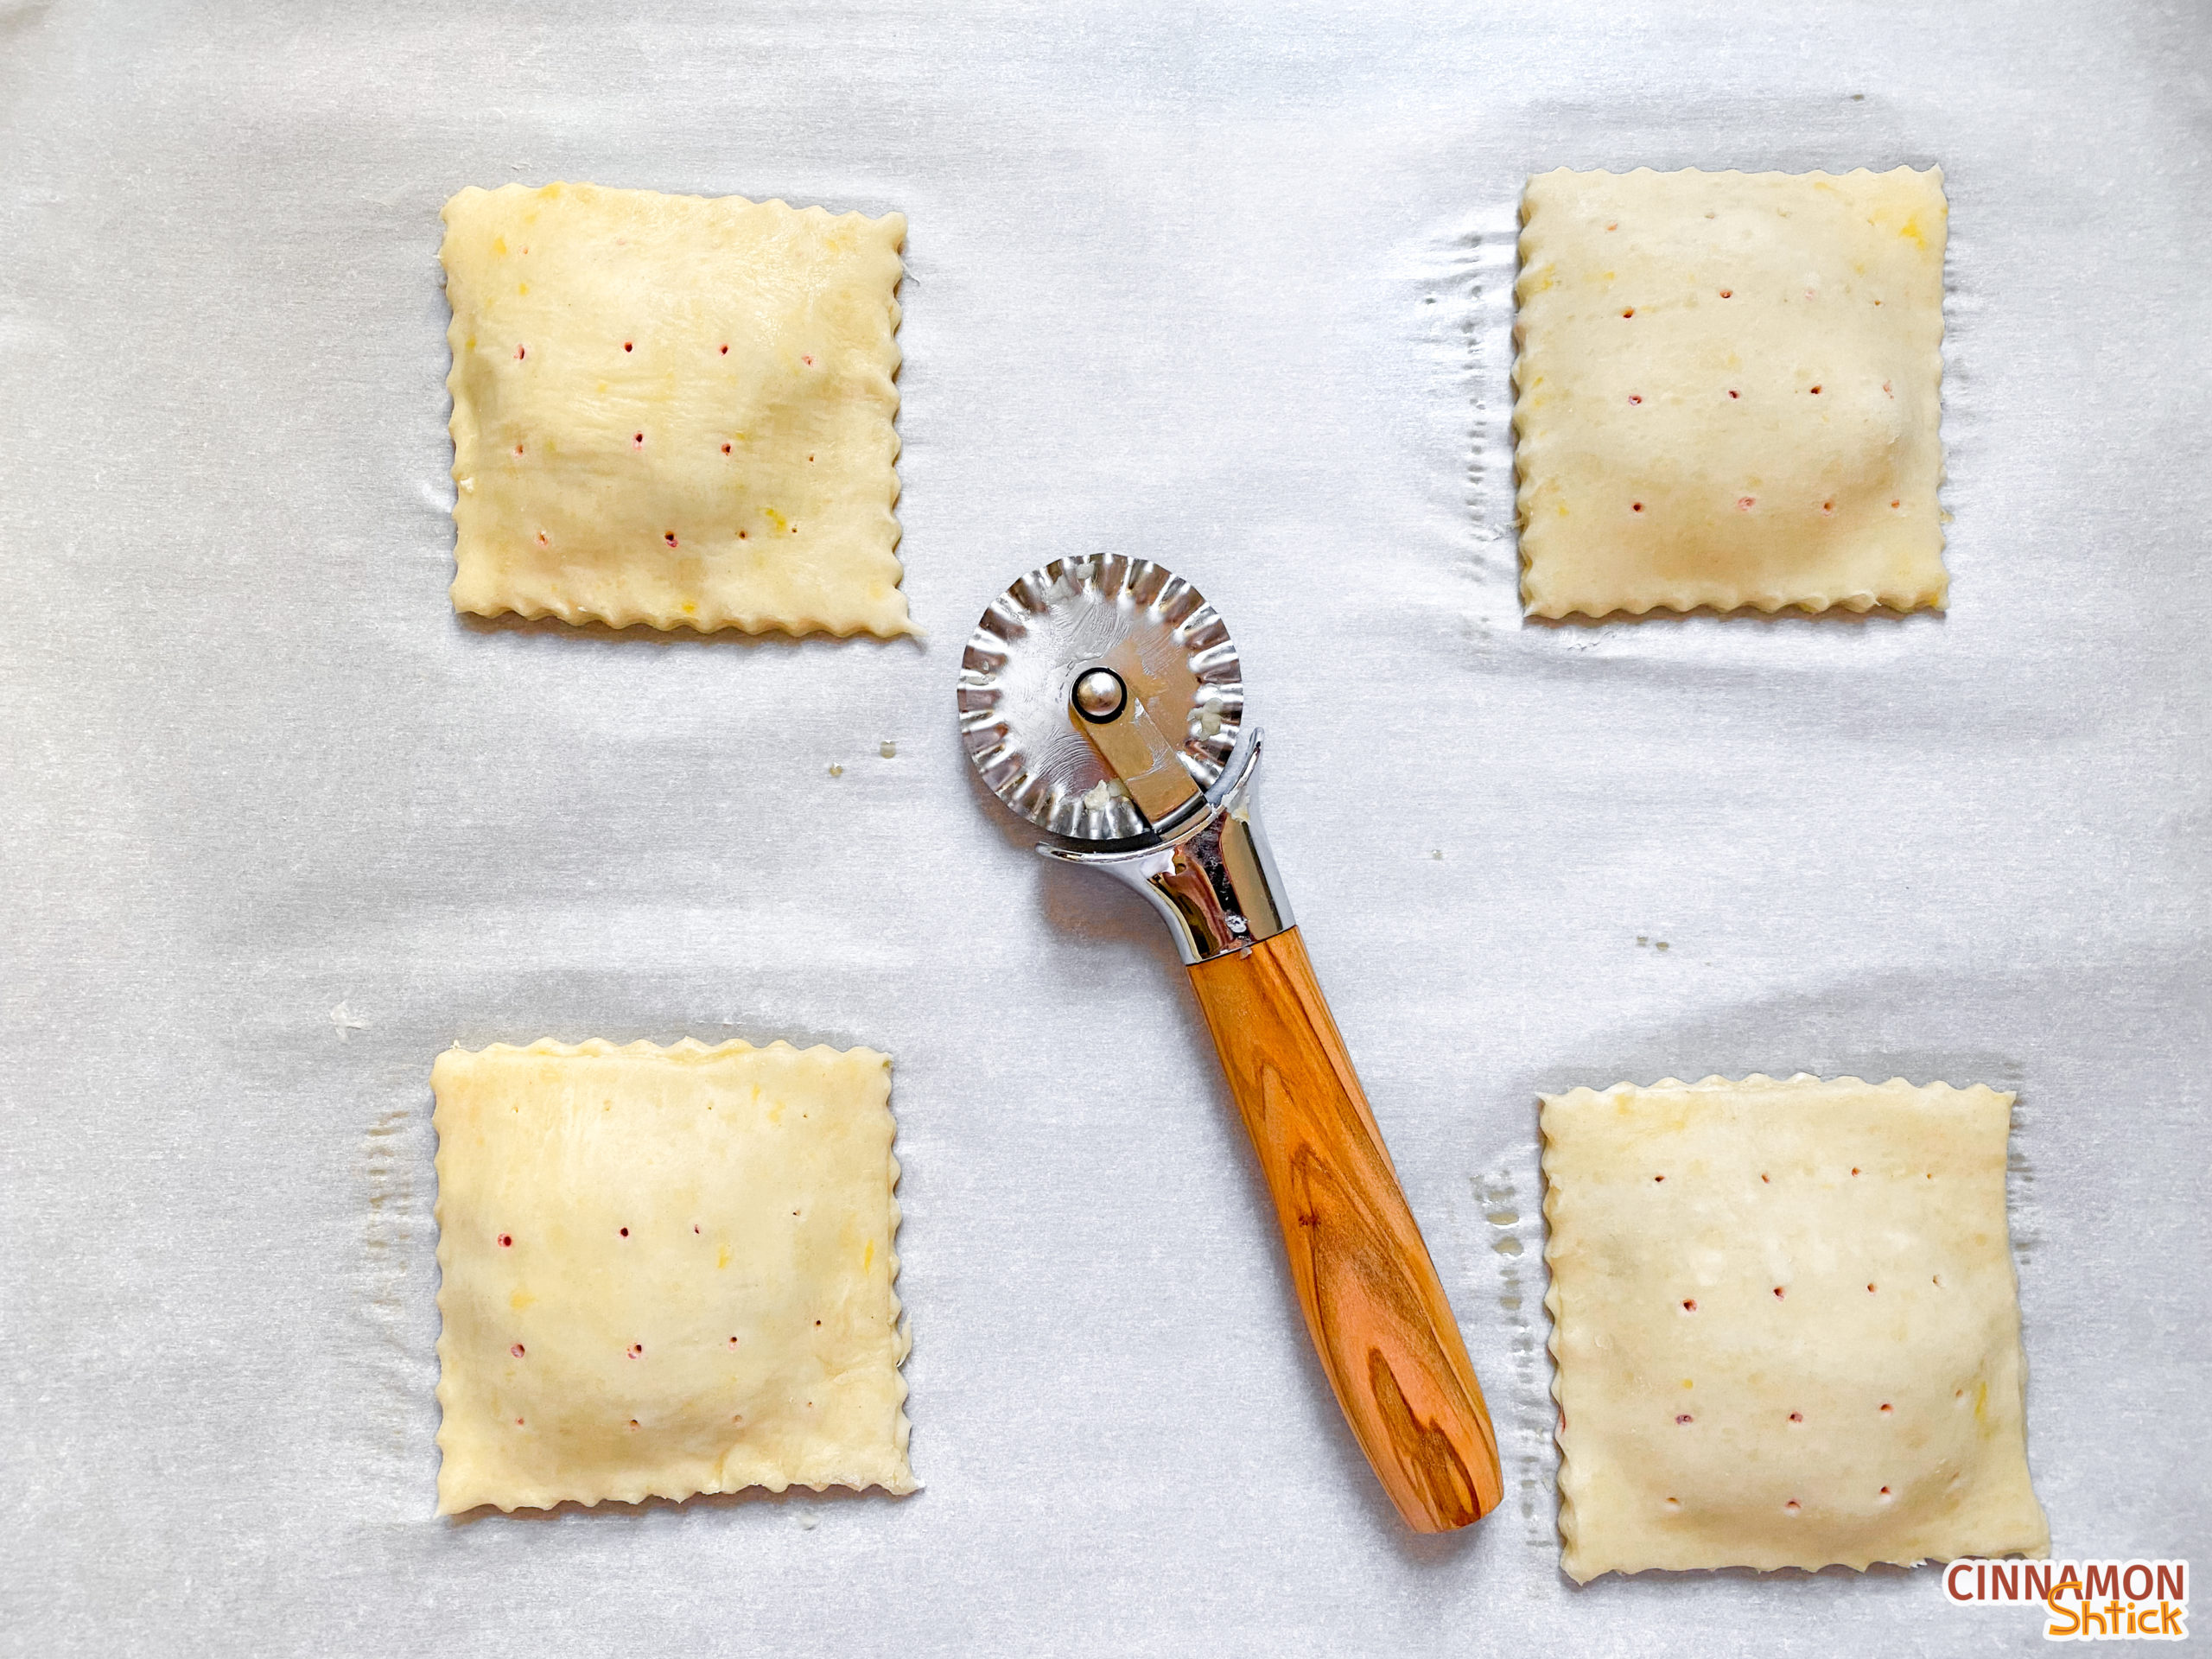 hand pies crimped on edges and holes on top dough